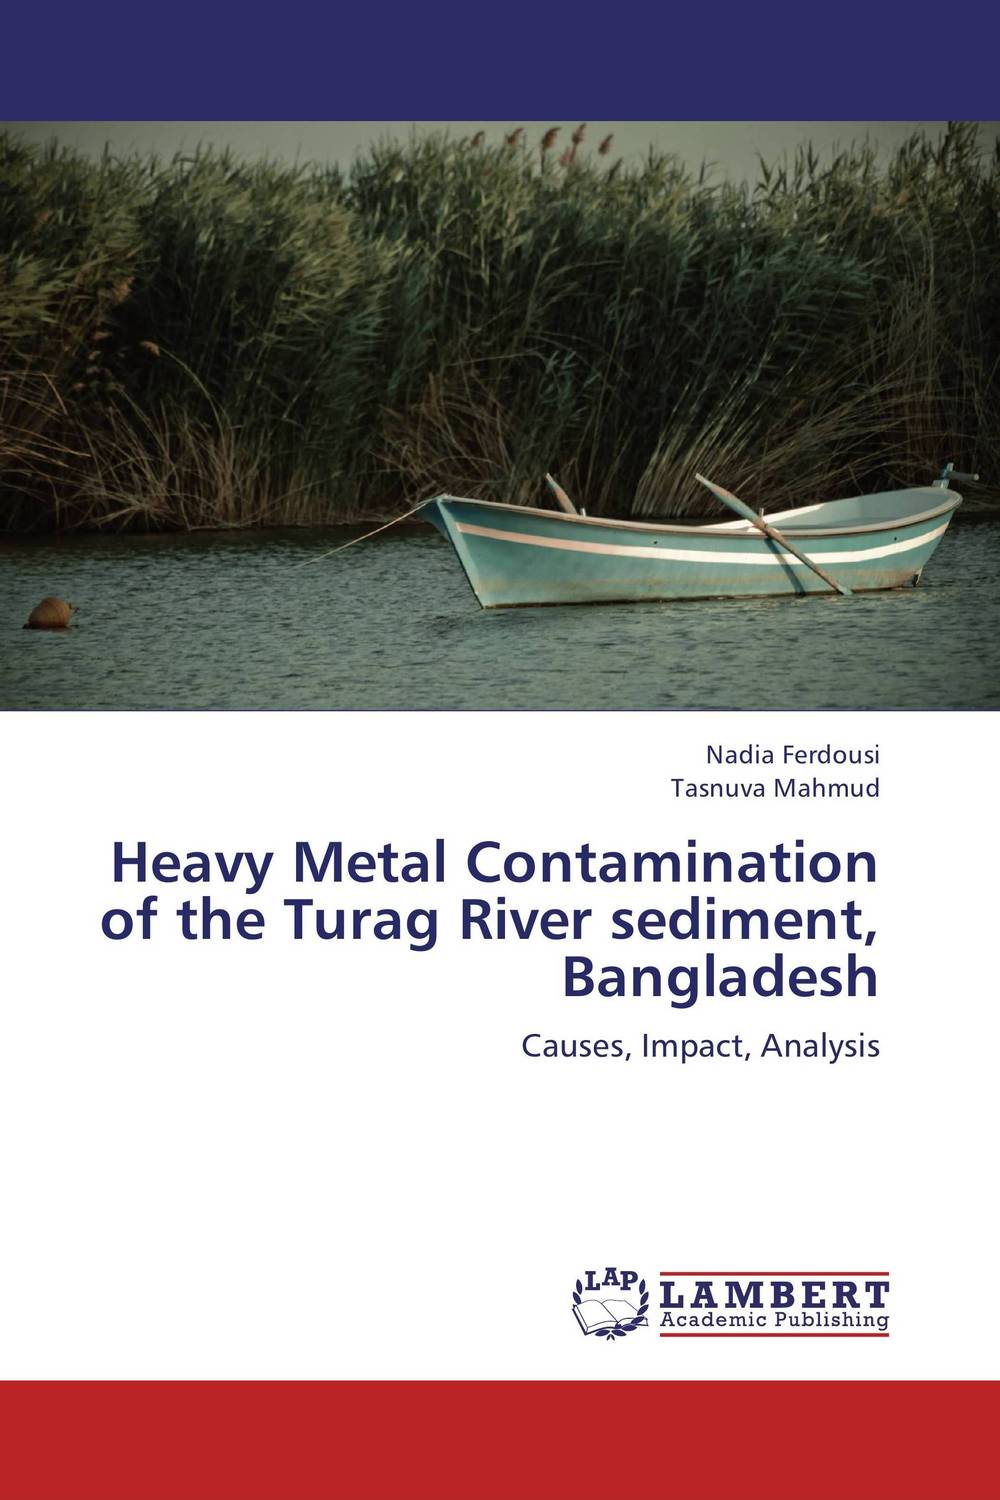 Heavy Metal Contamination of the Turag River sediment, Bangladesh cd pain of salvation in the passing light of day